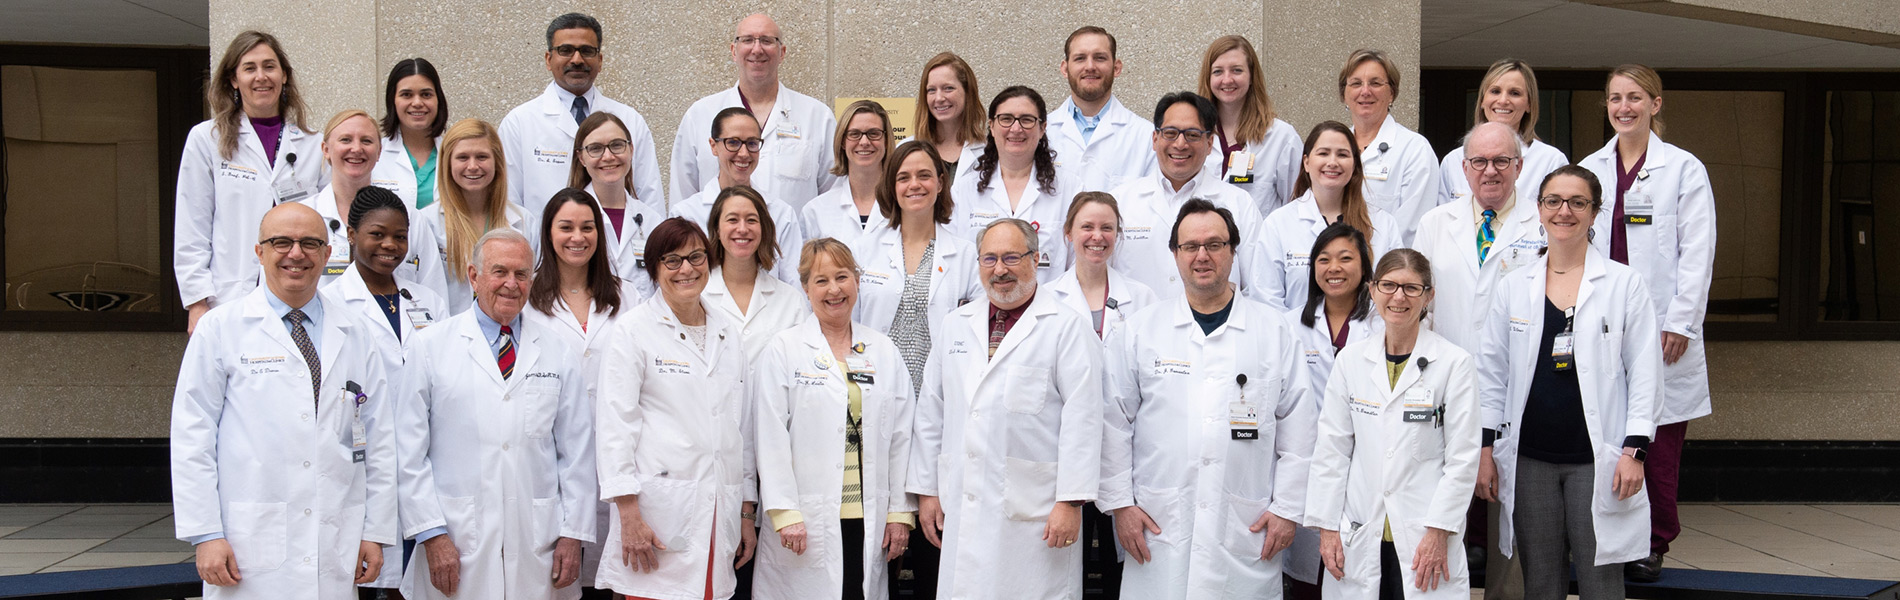 Group photo of doctors